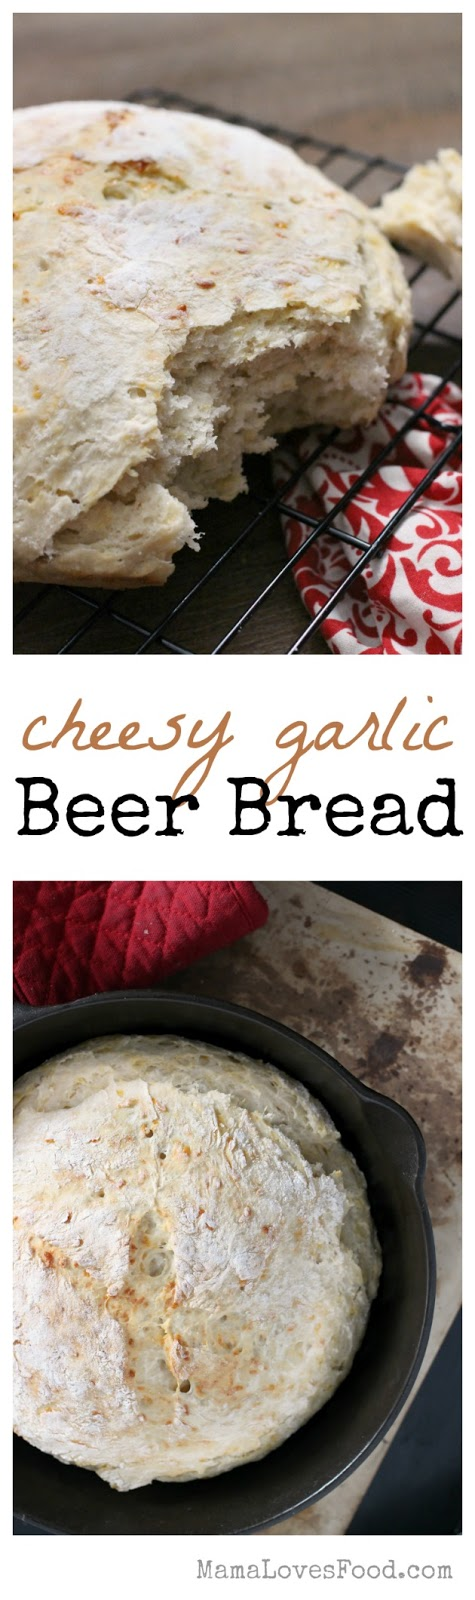 No Knead Cheesy Garlic Beer Bread recipe